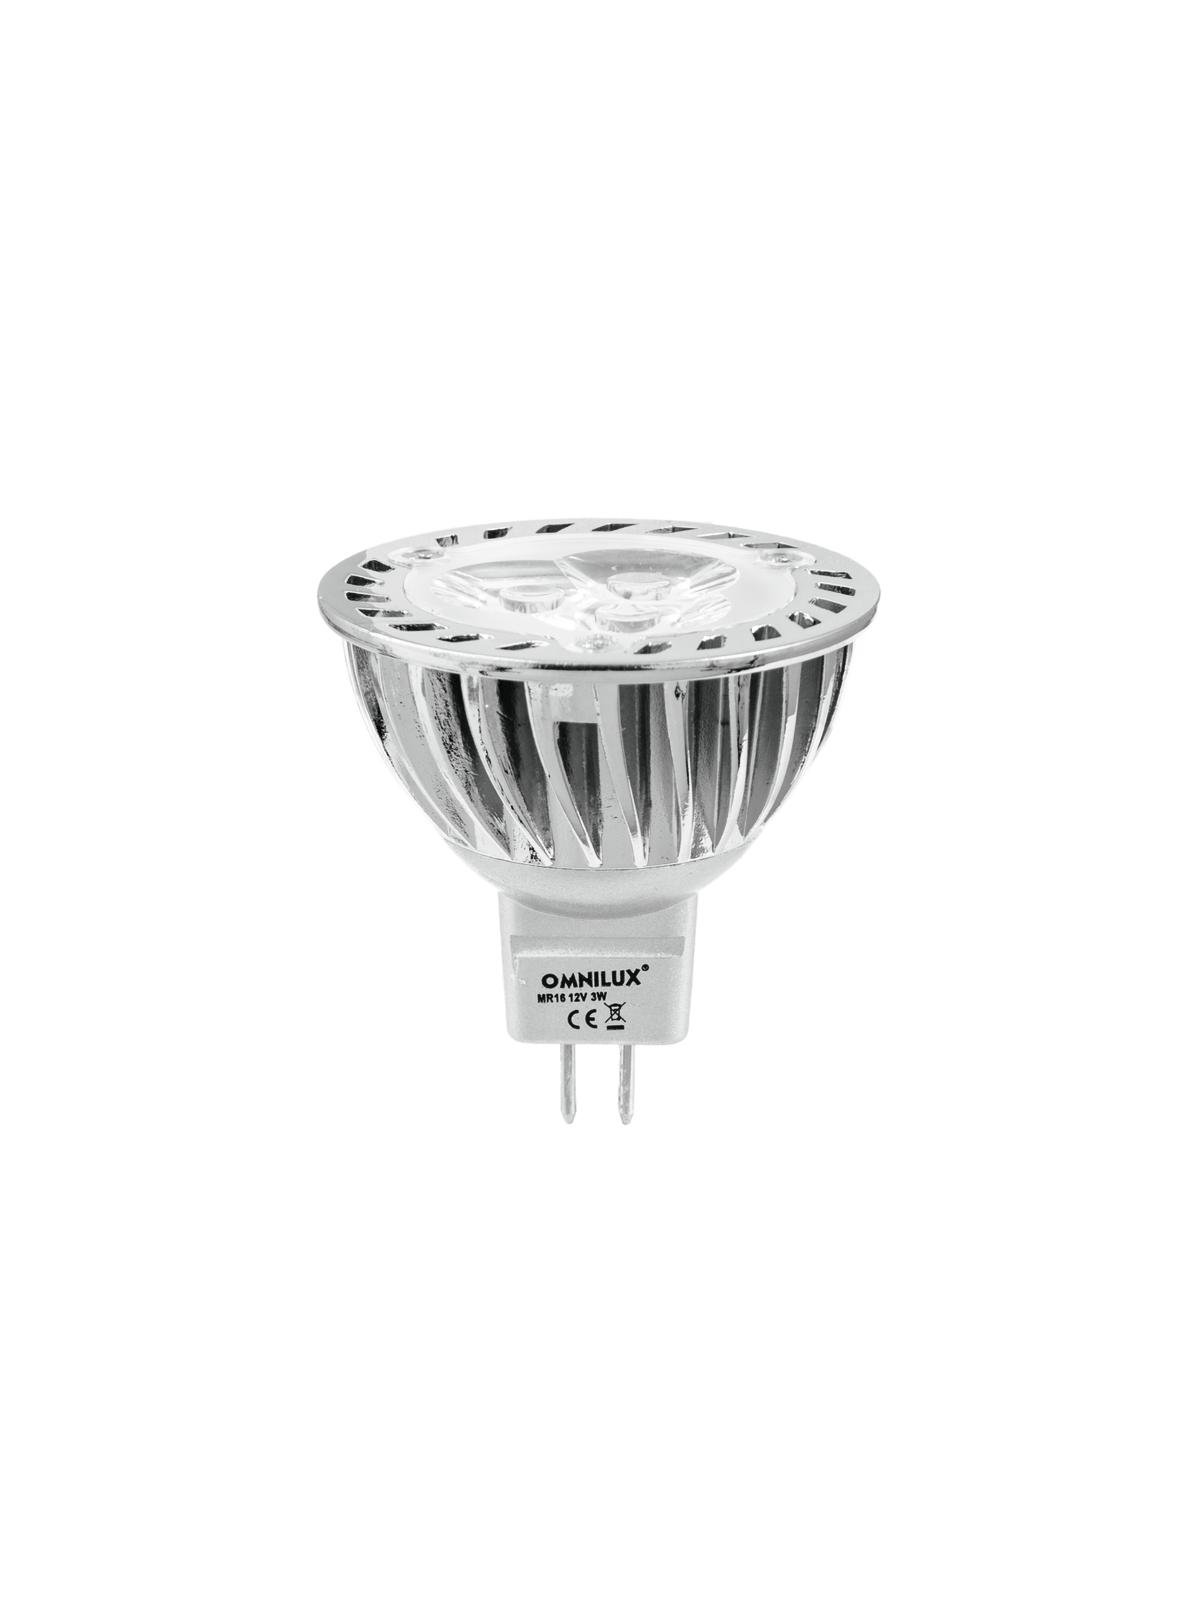 LED žárovka 12V MR-16 GU-5.3, 3x1W LED žlutá